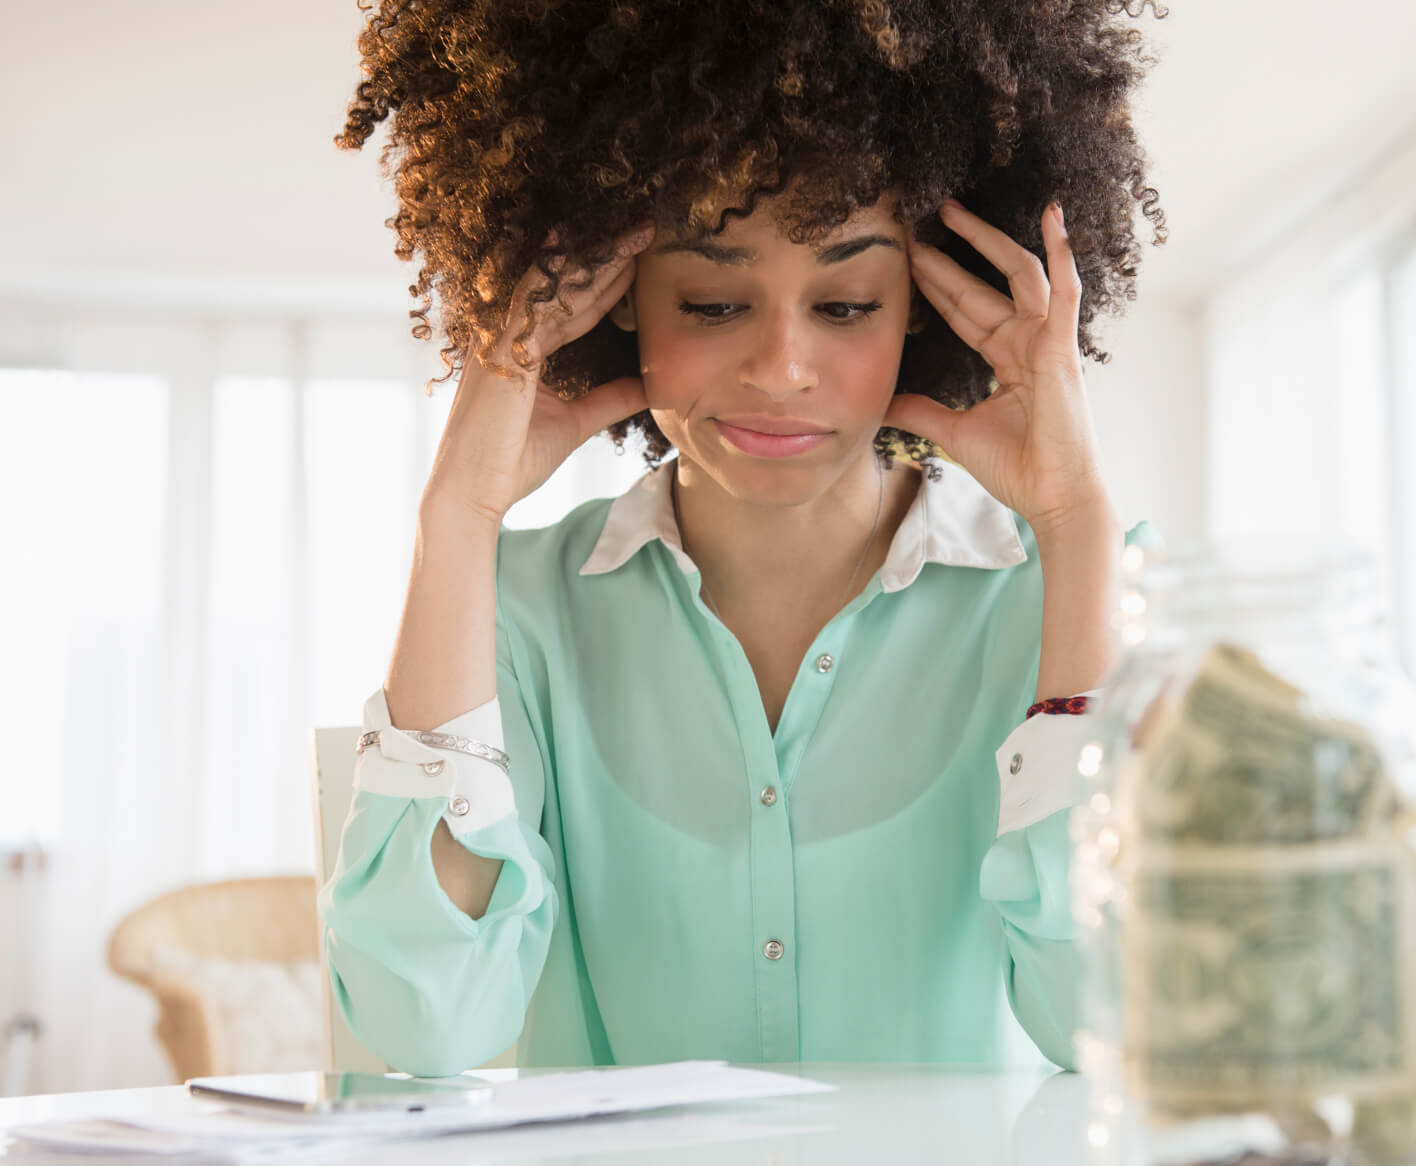 woman-distressed-budgeting